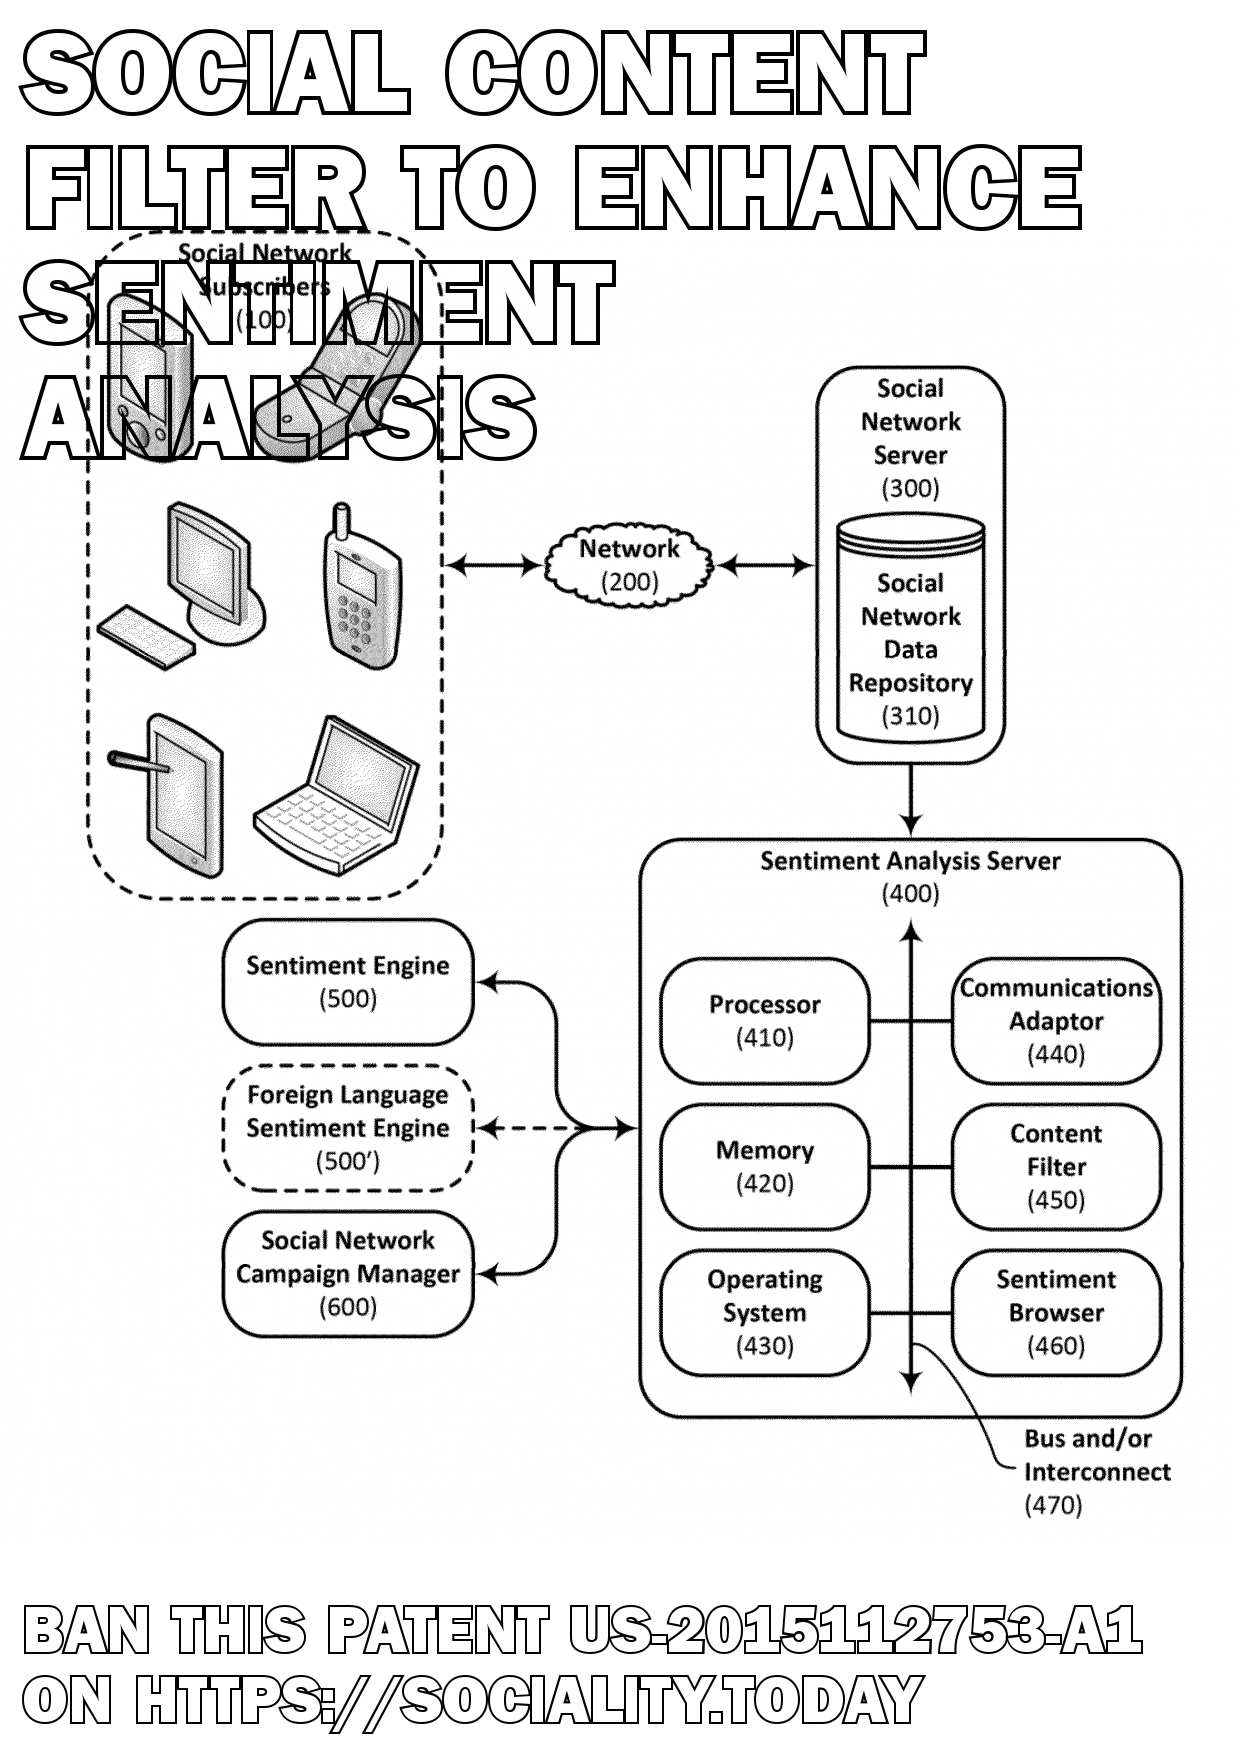 Social content filter to enhance sentiment analysis  - US-2015112753-A1